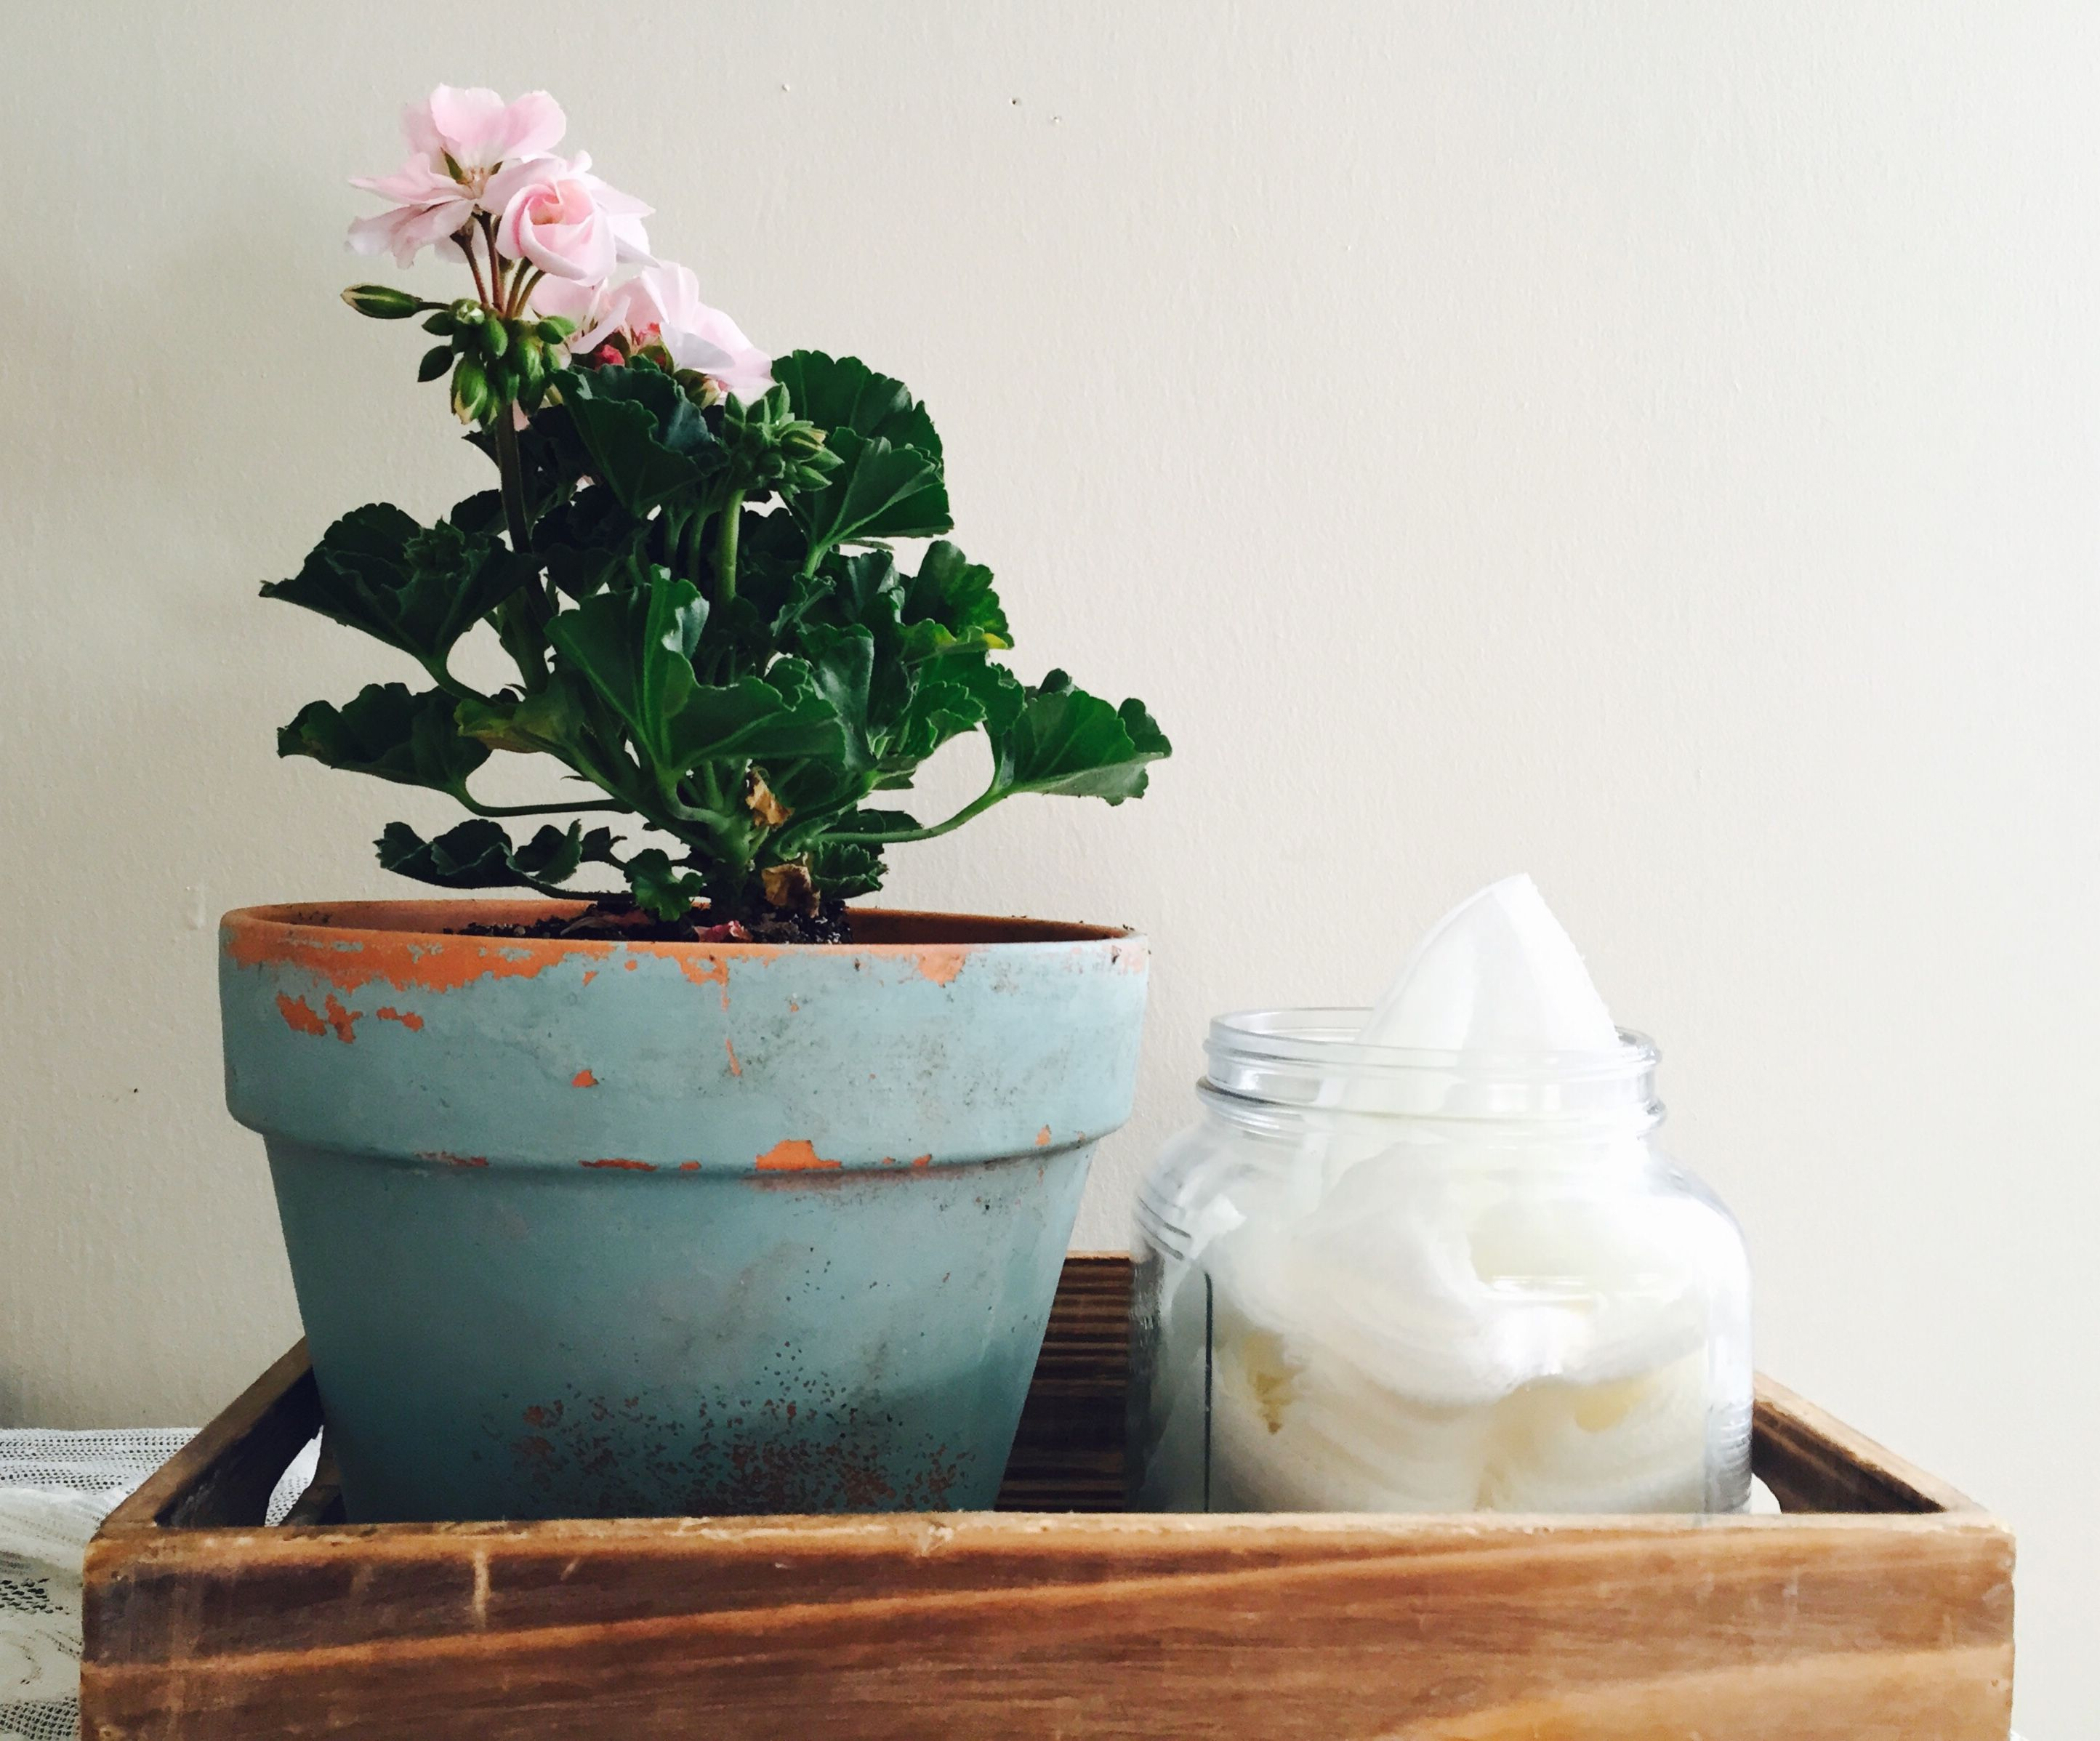 Homemade Face and Body Wipes This clean safe recipe for homemade face and body wipes is perfect to use on any age. I think we will all agree wipes are convenient for just about everywhere. However, many face and body wipes on the market are full of ingredients, like fragrance, that are not great for …